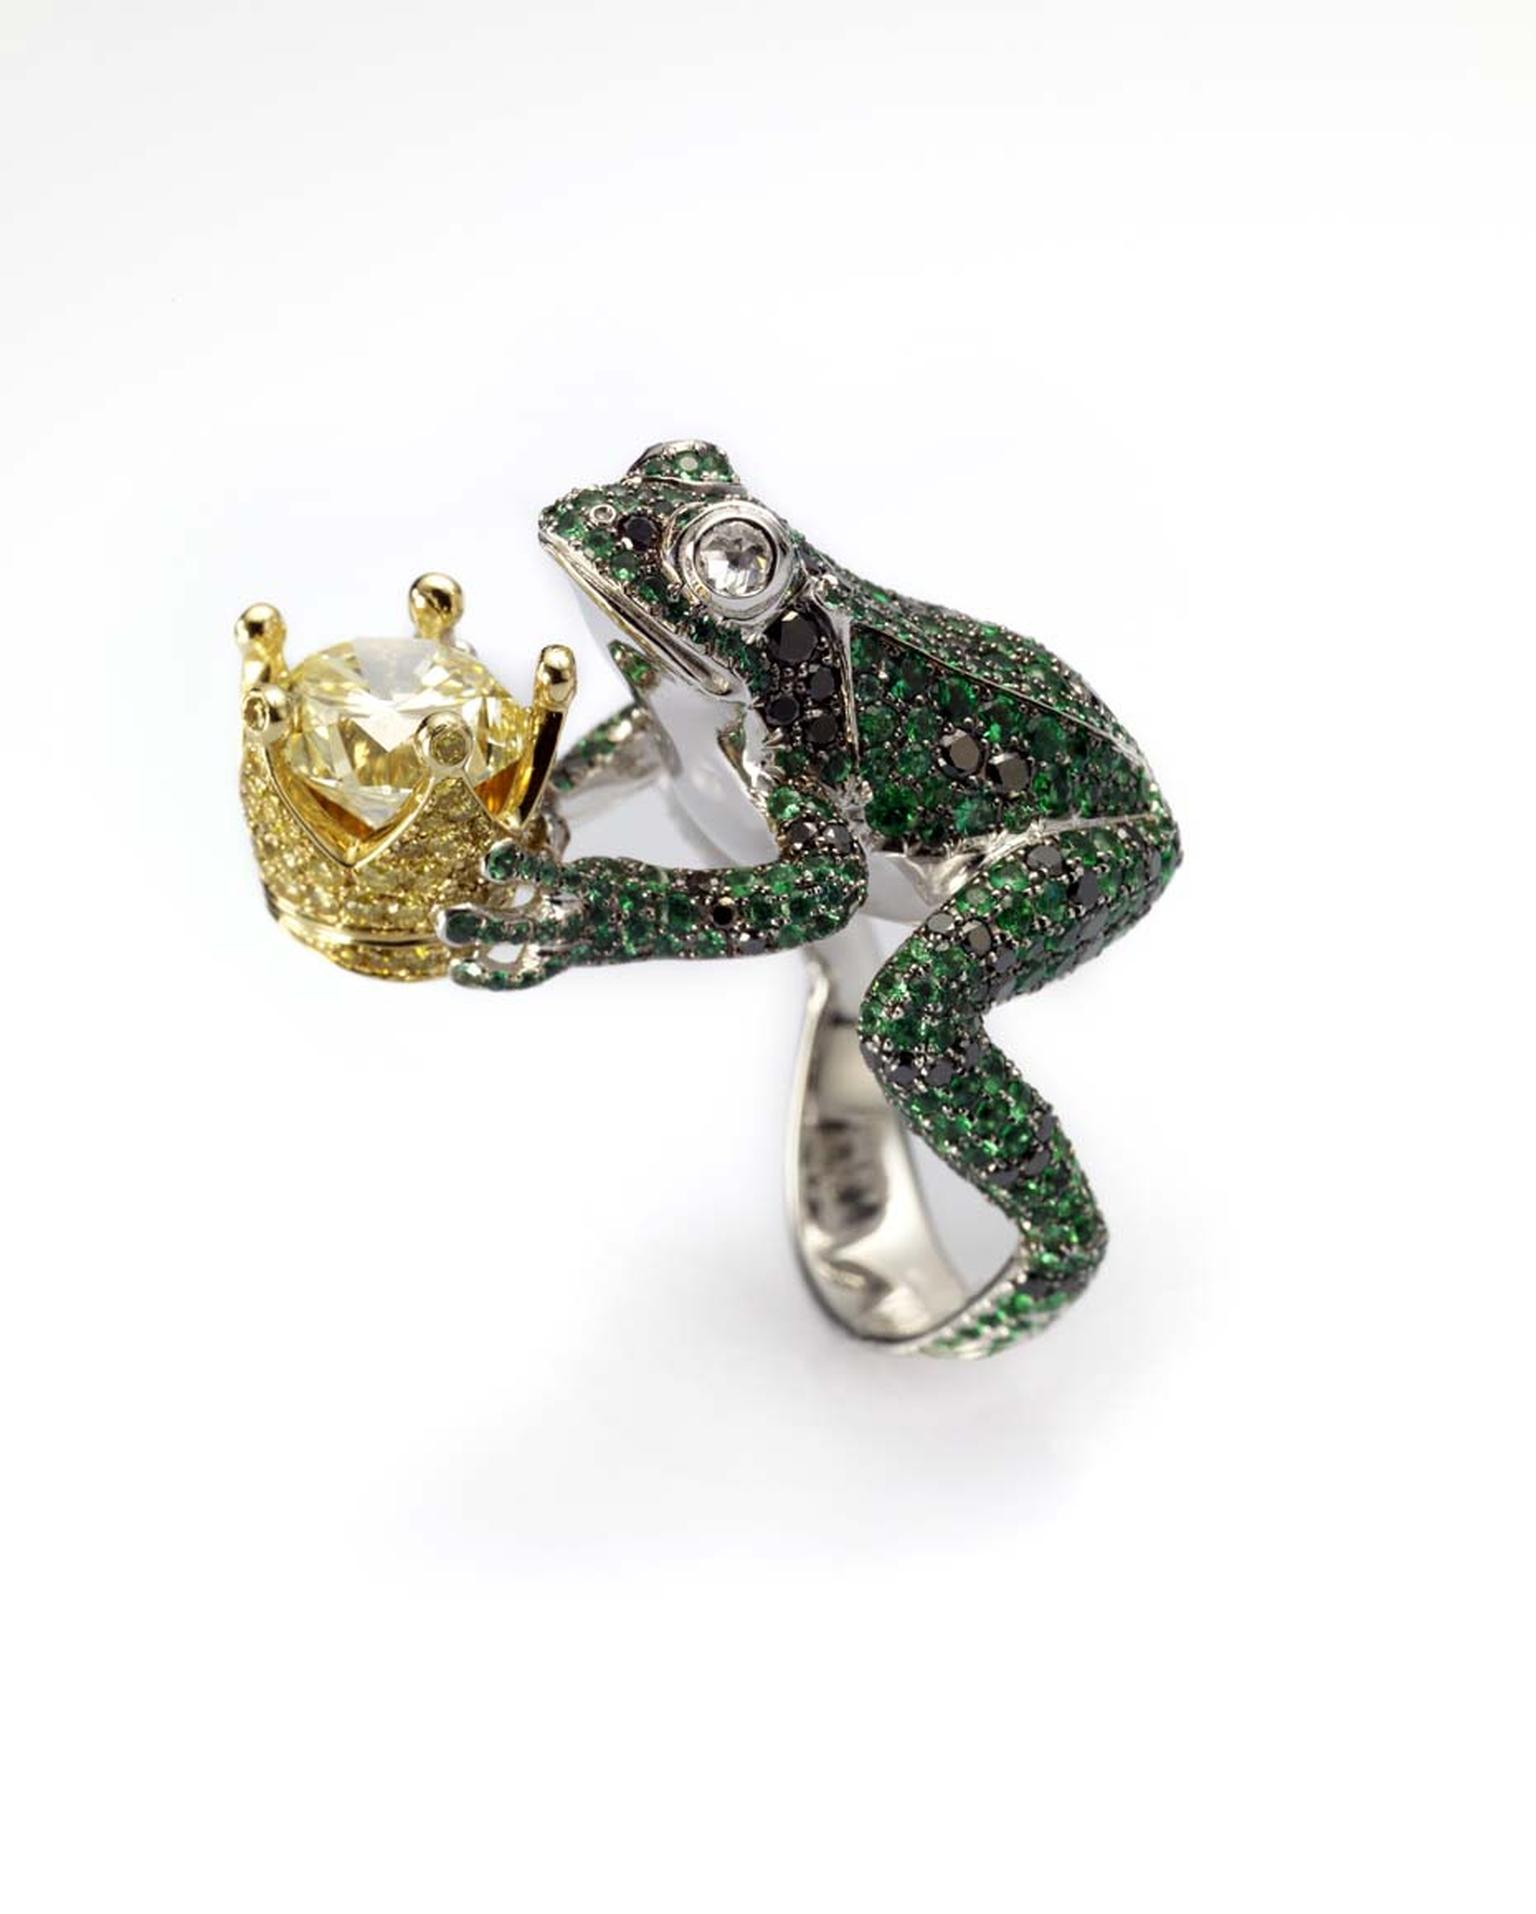 Chopard ring, also from the Animal World collection, featuring a frog in white gold set with emeralds, black diamonds and white diamonds, holding a crown featuring a stunning brilliant-cut yellow diamond surrounded by a pavé of yellow diamonds.